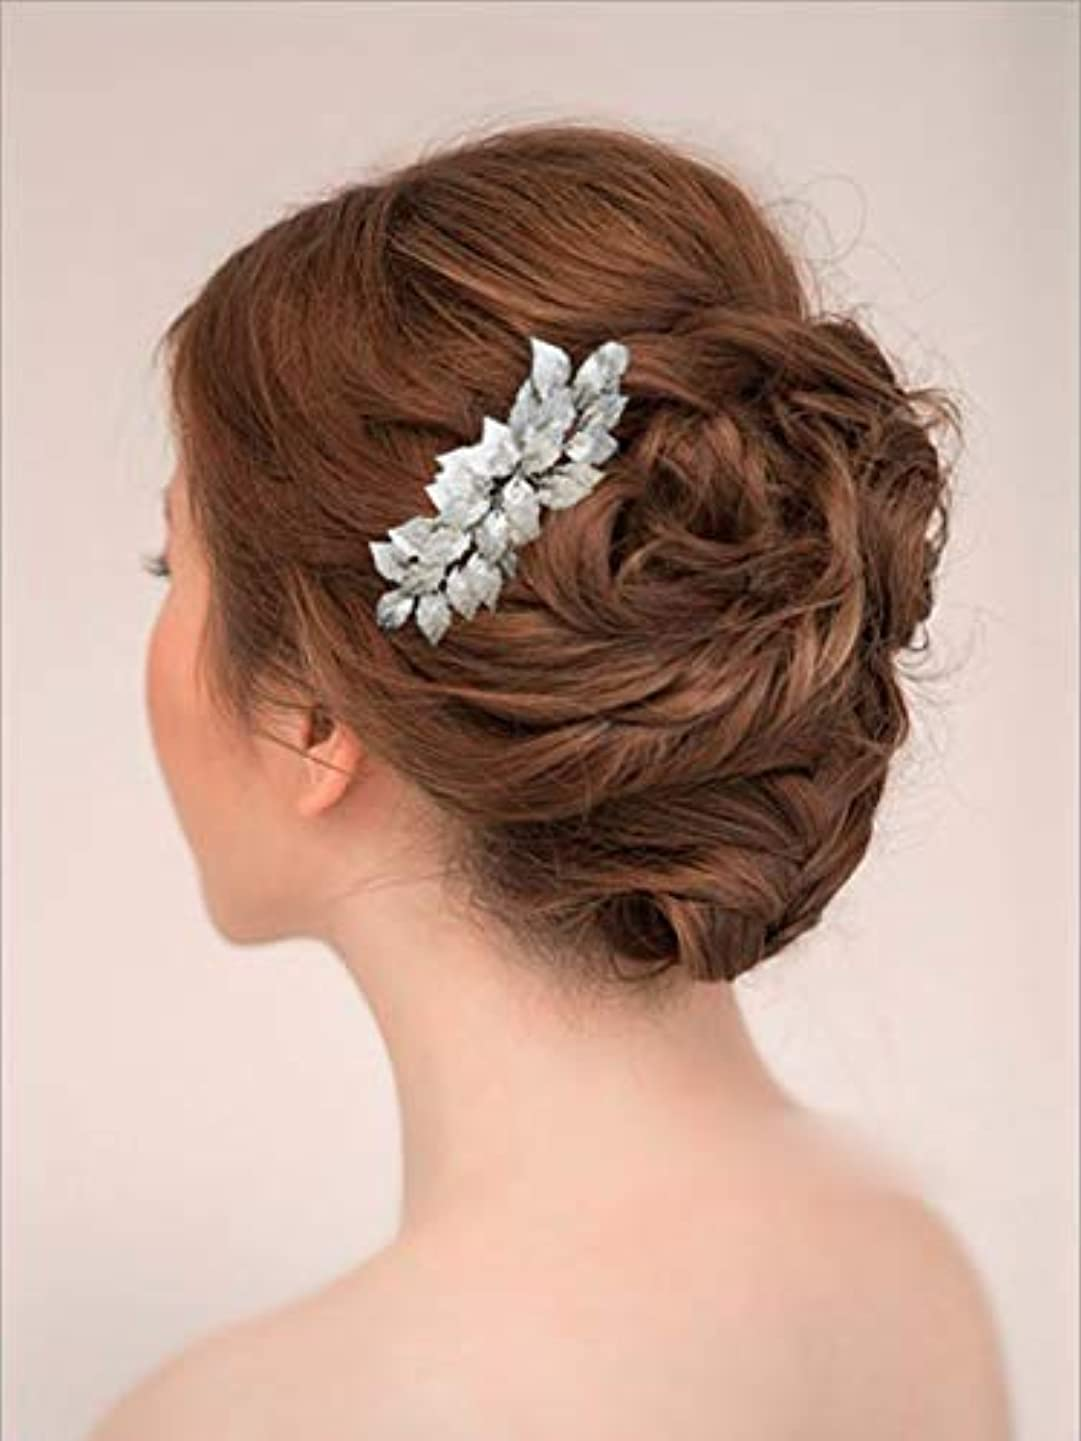 電報宿泊明示的にYean Bride Wedding Hair Comb Leaves Bridal Hair Comb Accessories for Bride and Bridesmaid (Silver) [並行輸入品]